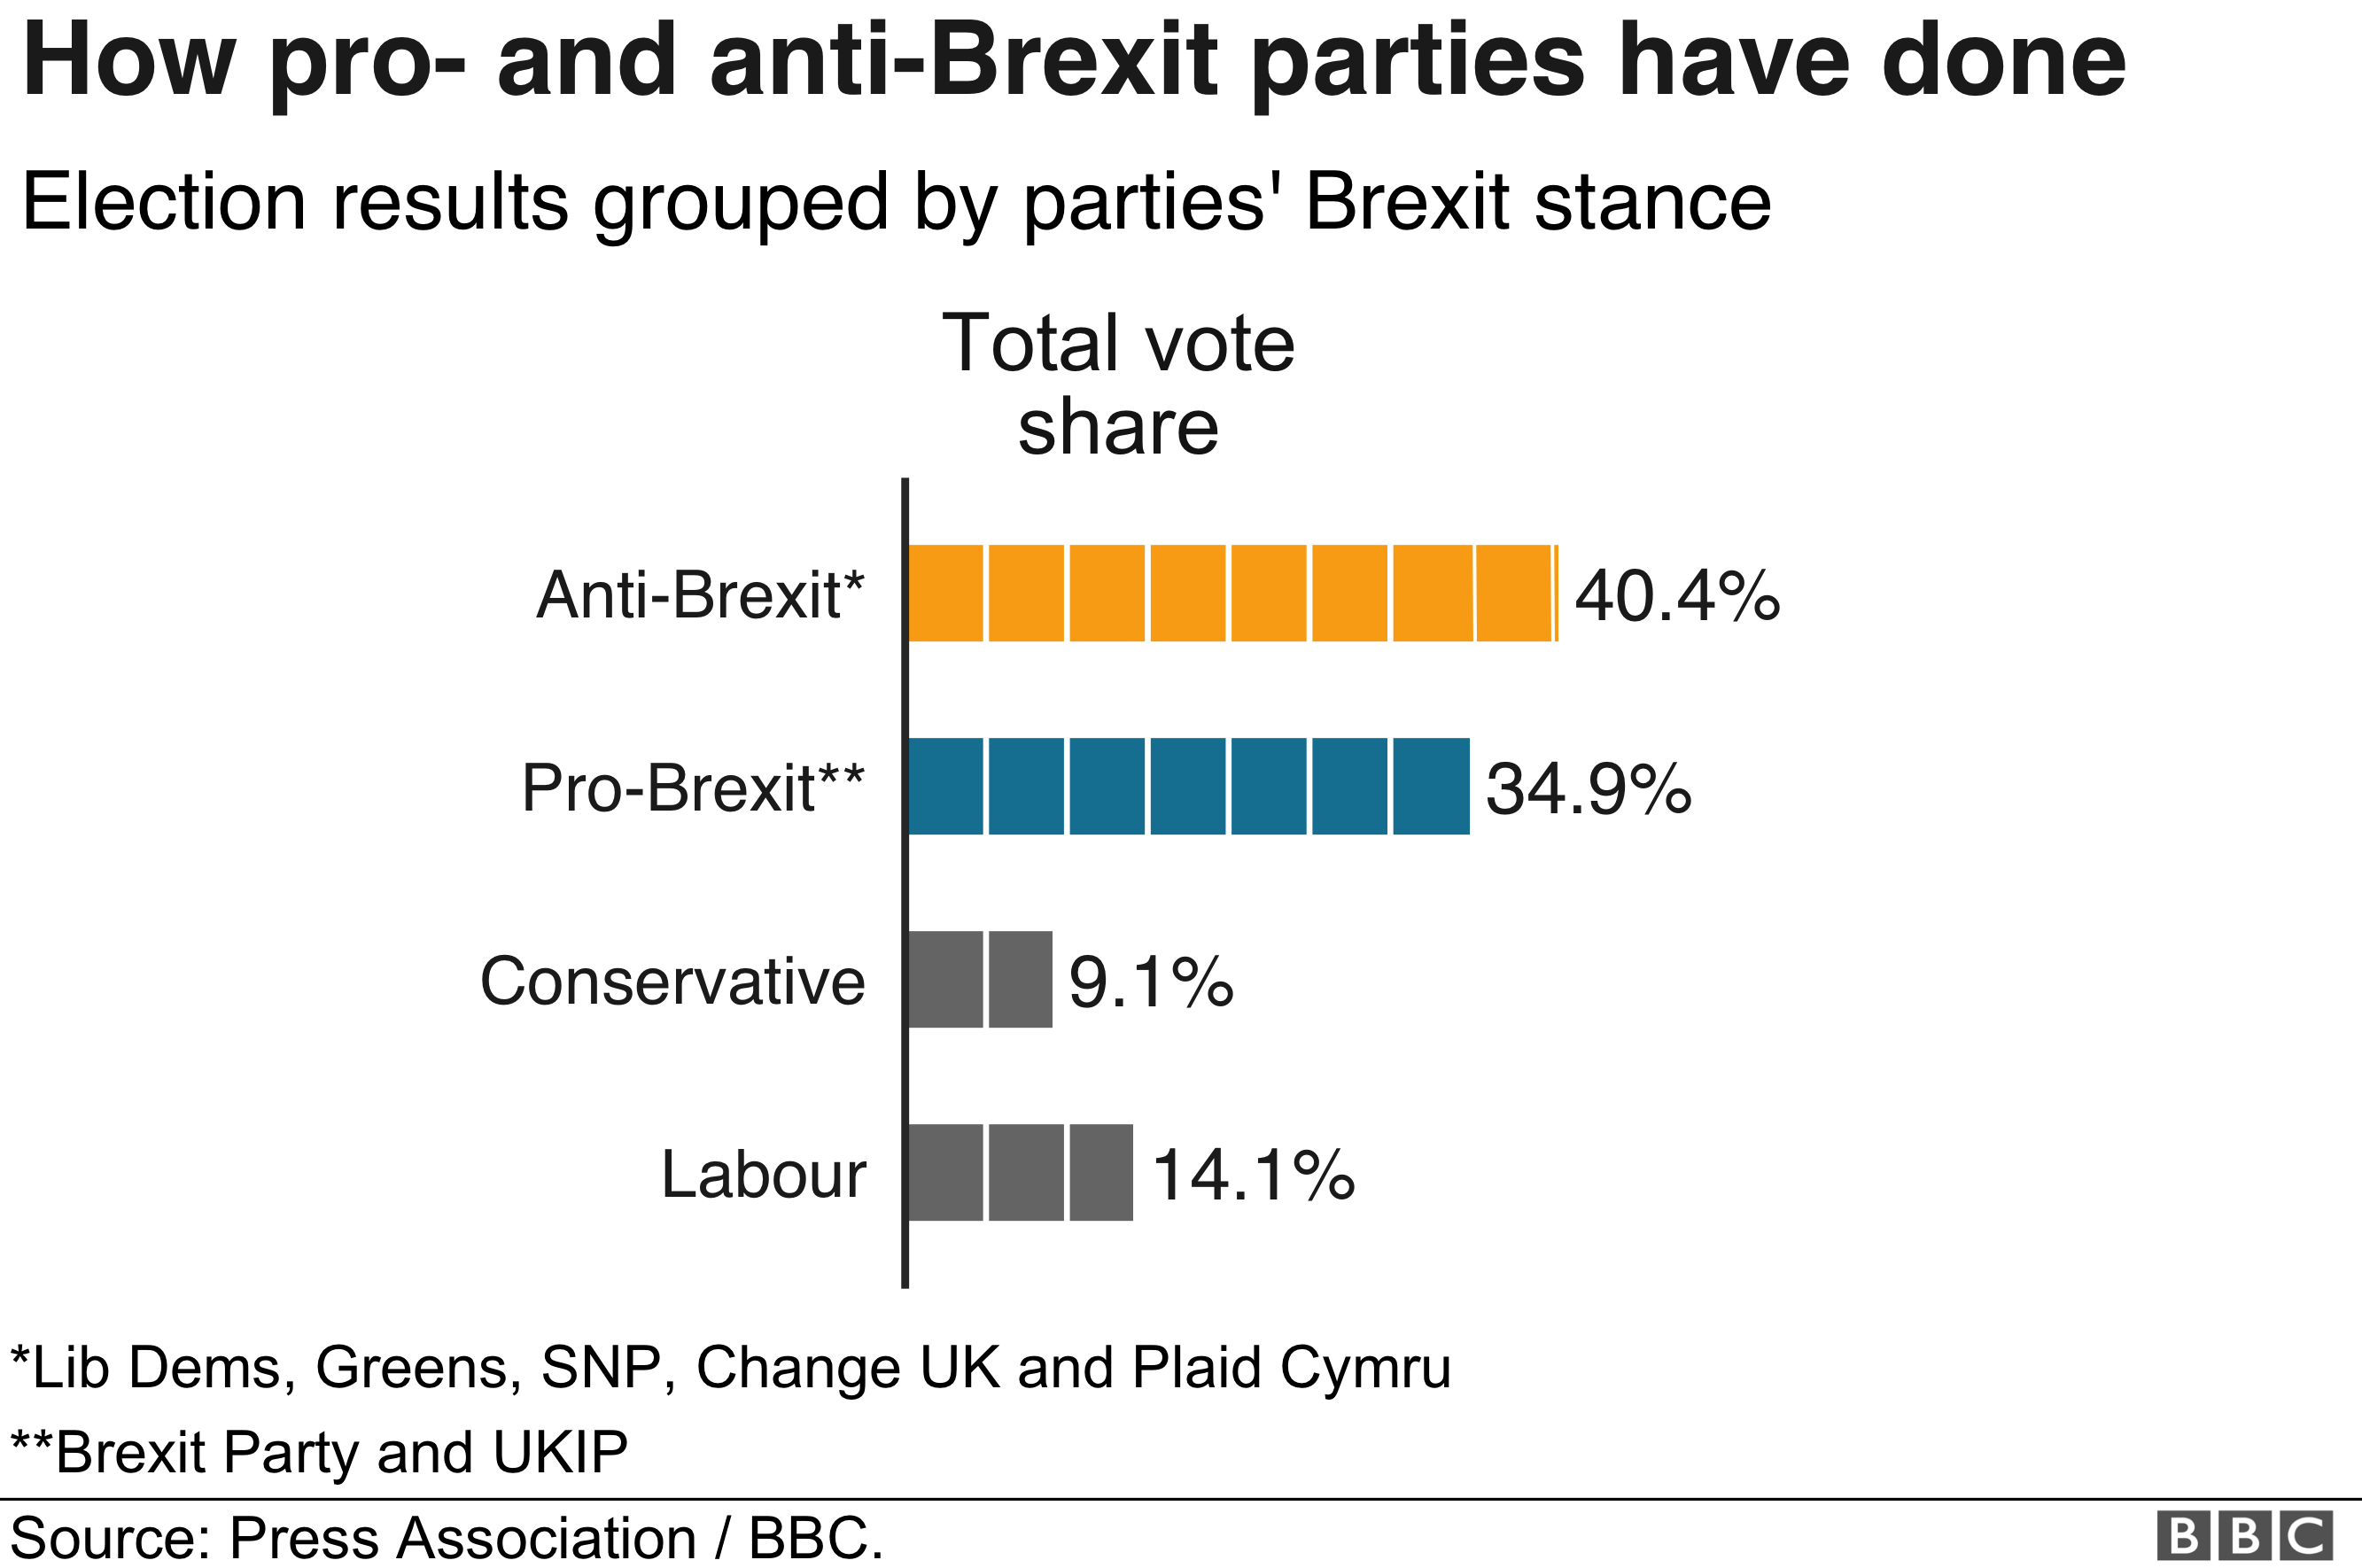 How pro-Brexit (34.9%) and anti-Brexit parties have done (40.4%)